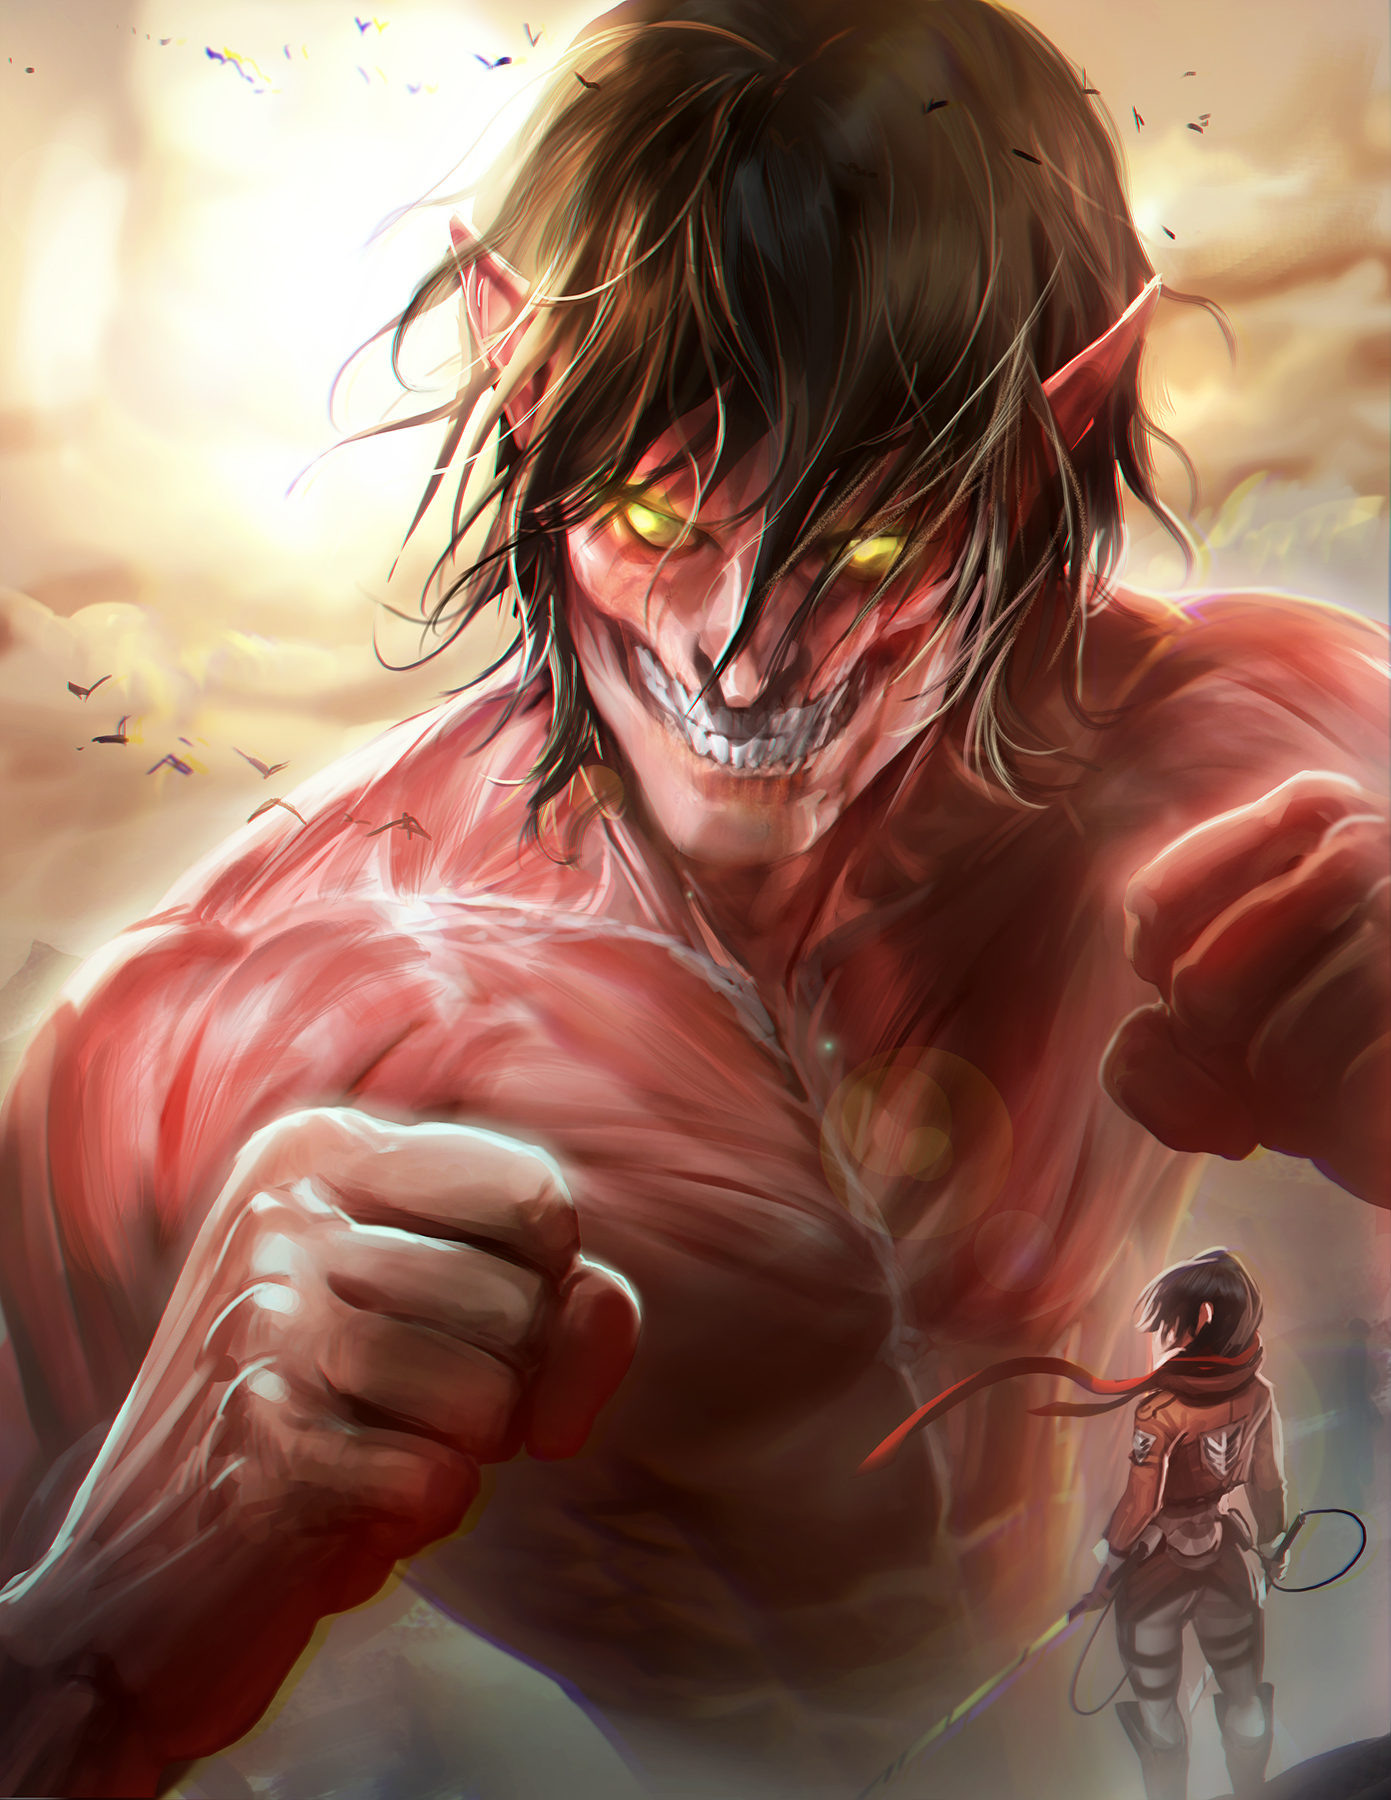 titans red shingeki no - photo #47